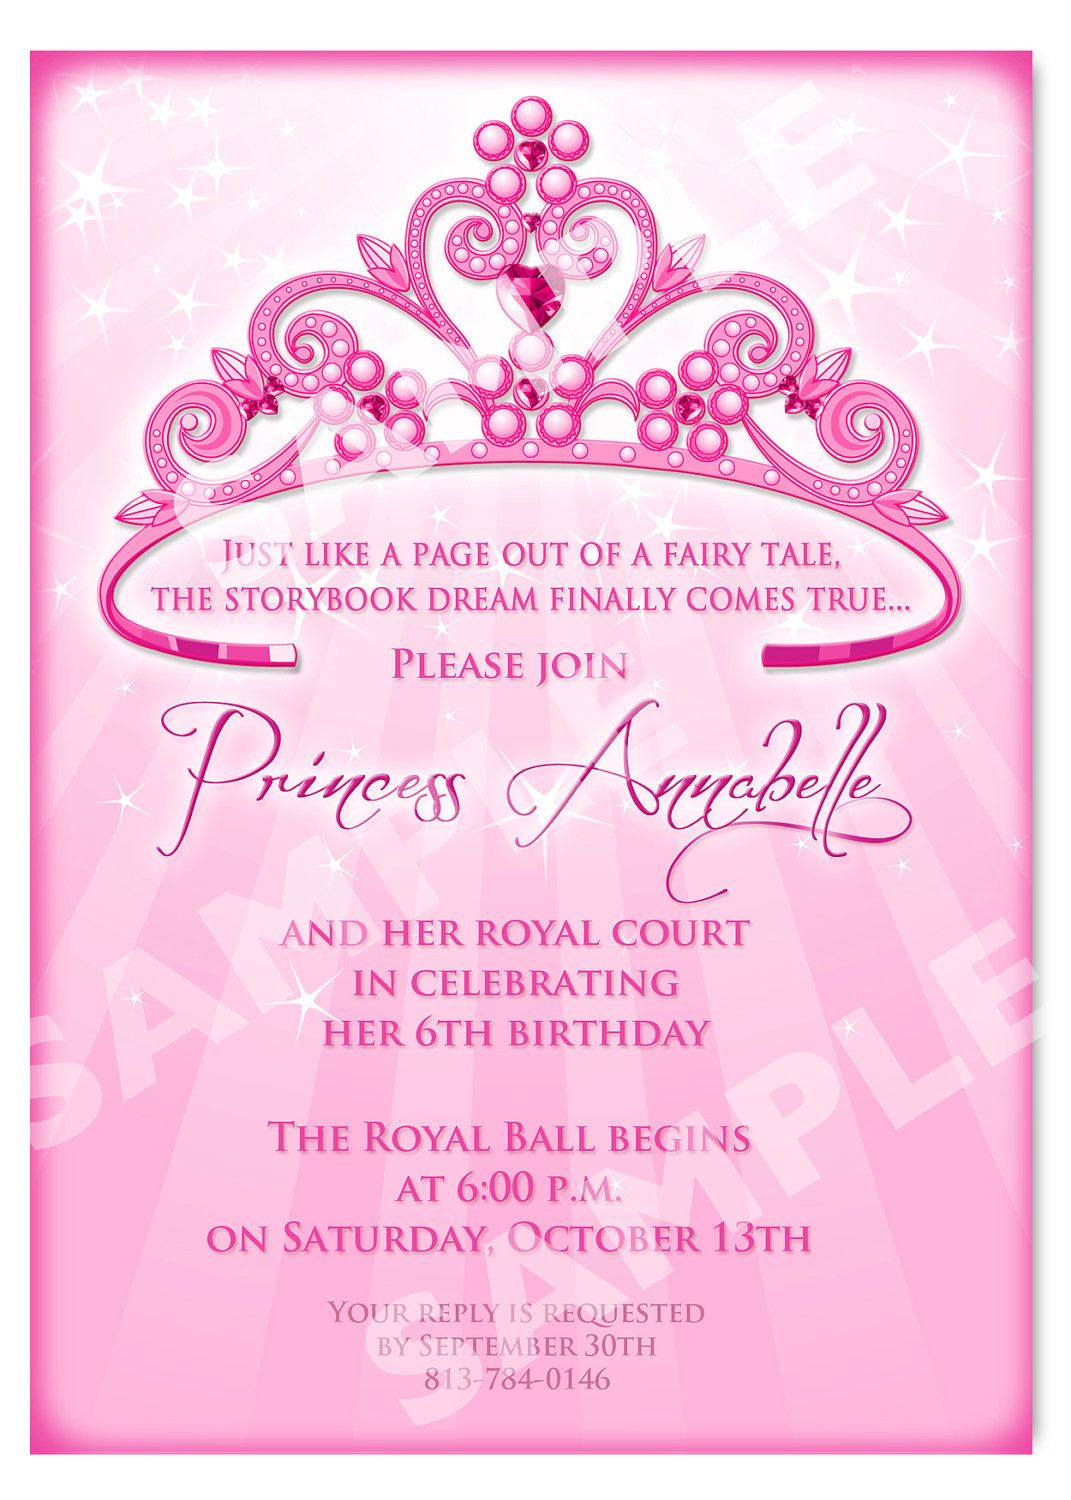 Printable Princess Invitation Cards Birthday Party Ideas inside proportions 1071 X 1500